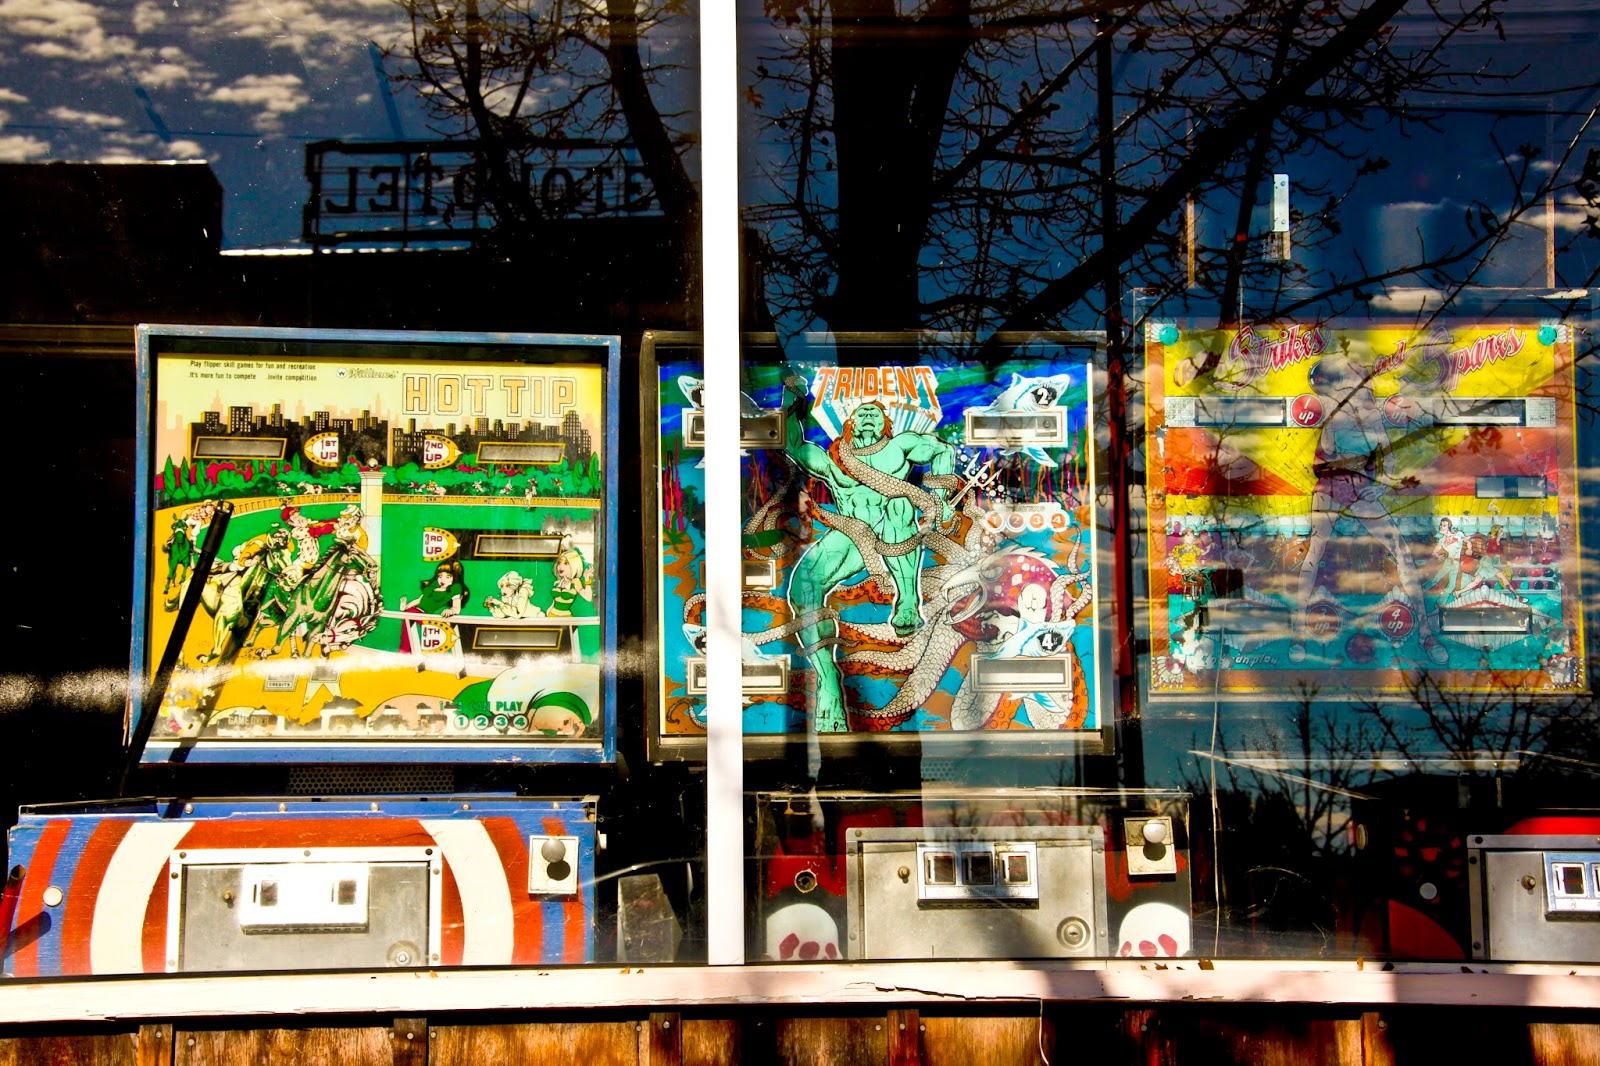 A window display of broken pinball machines and a reflection on the window of a hotel sign and a tree.